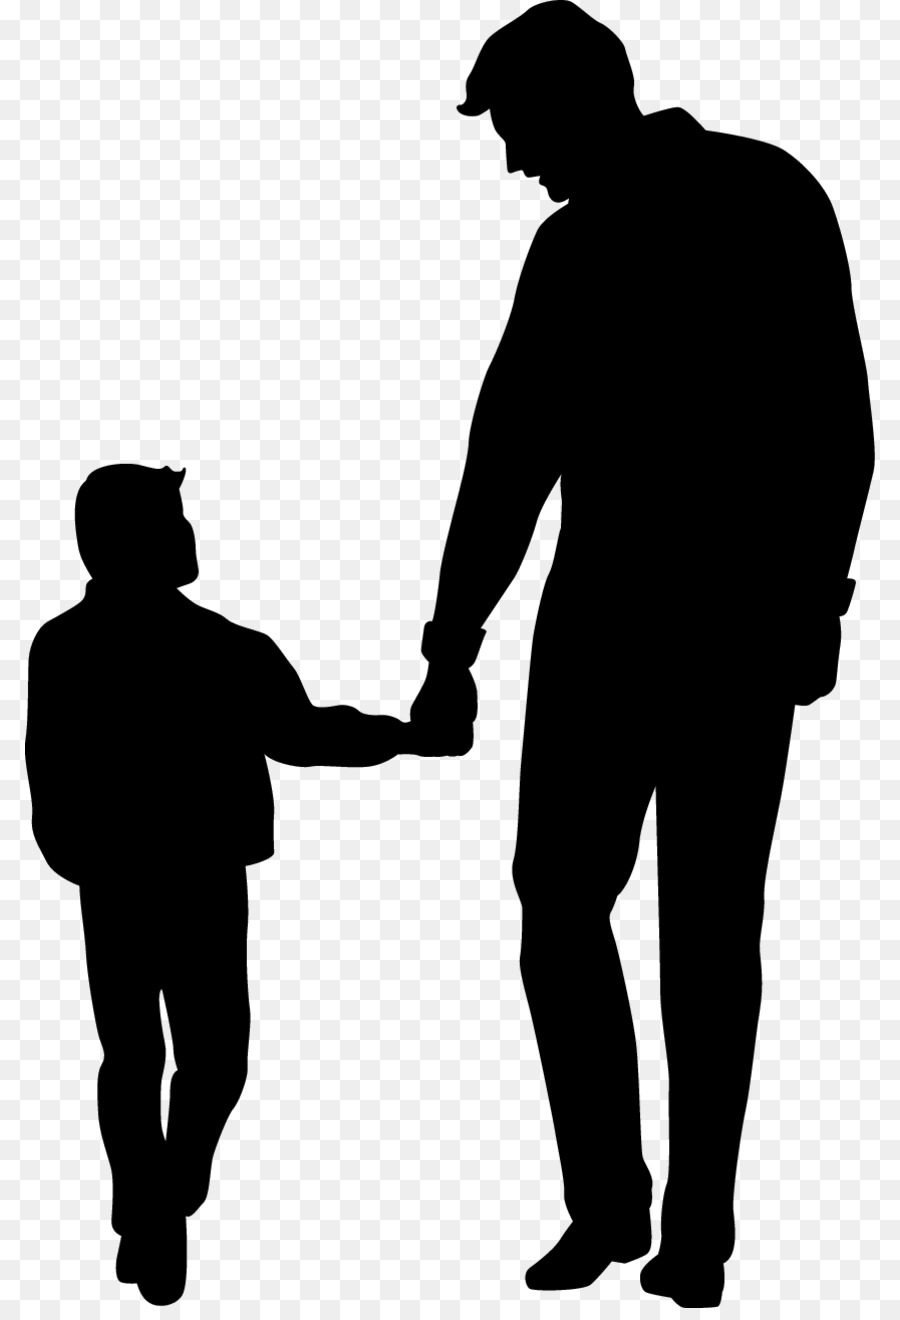 father s day son clip art fathers day png download 850 1308 rh kisspng com professional clipart for powerpoint professional clipart for powerpoint